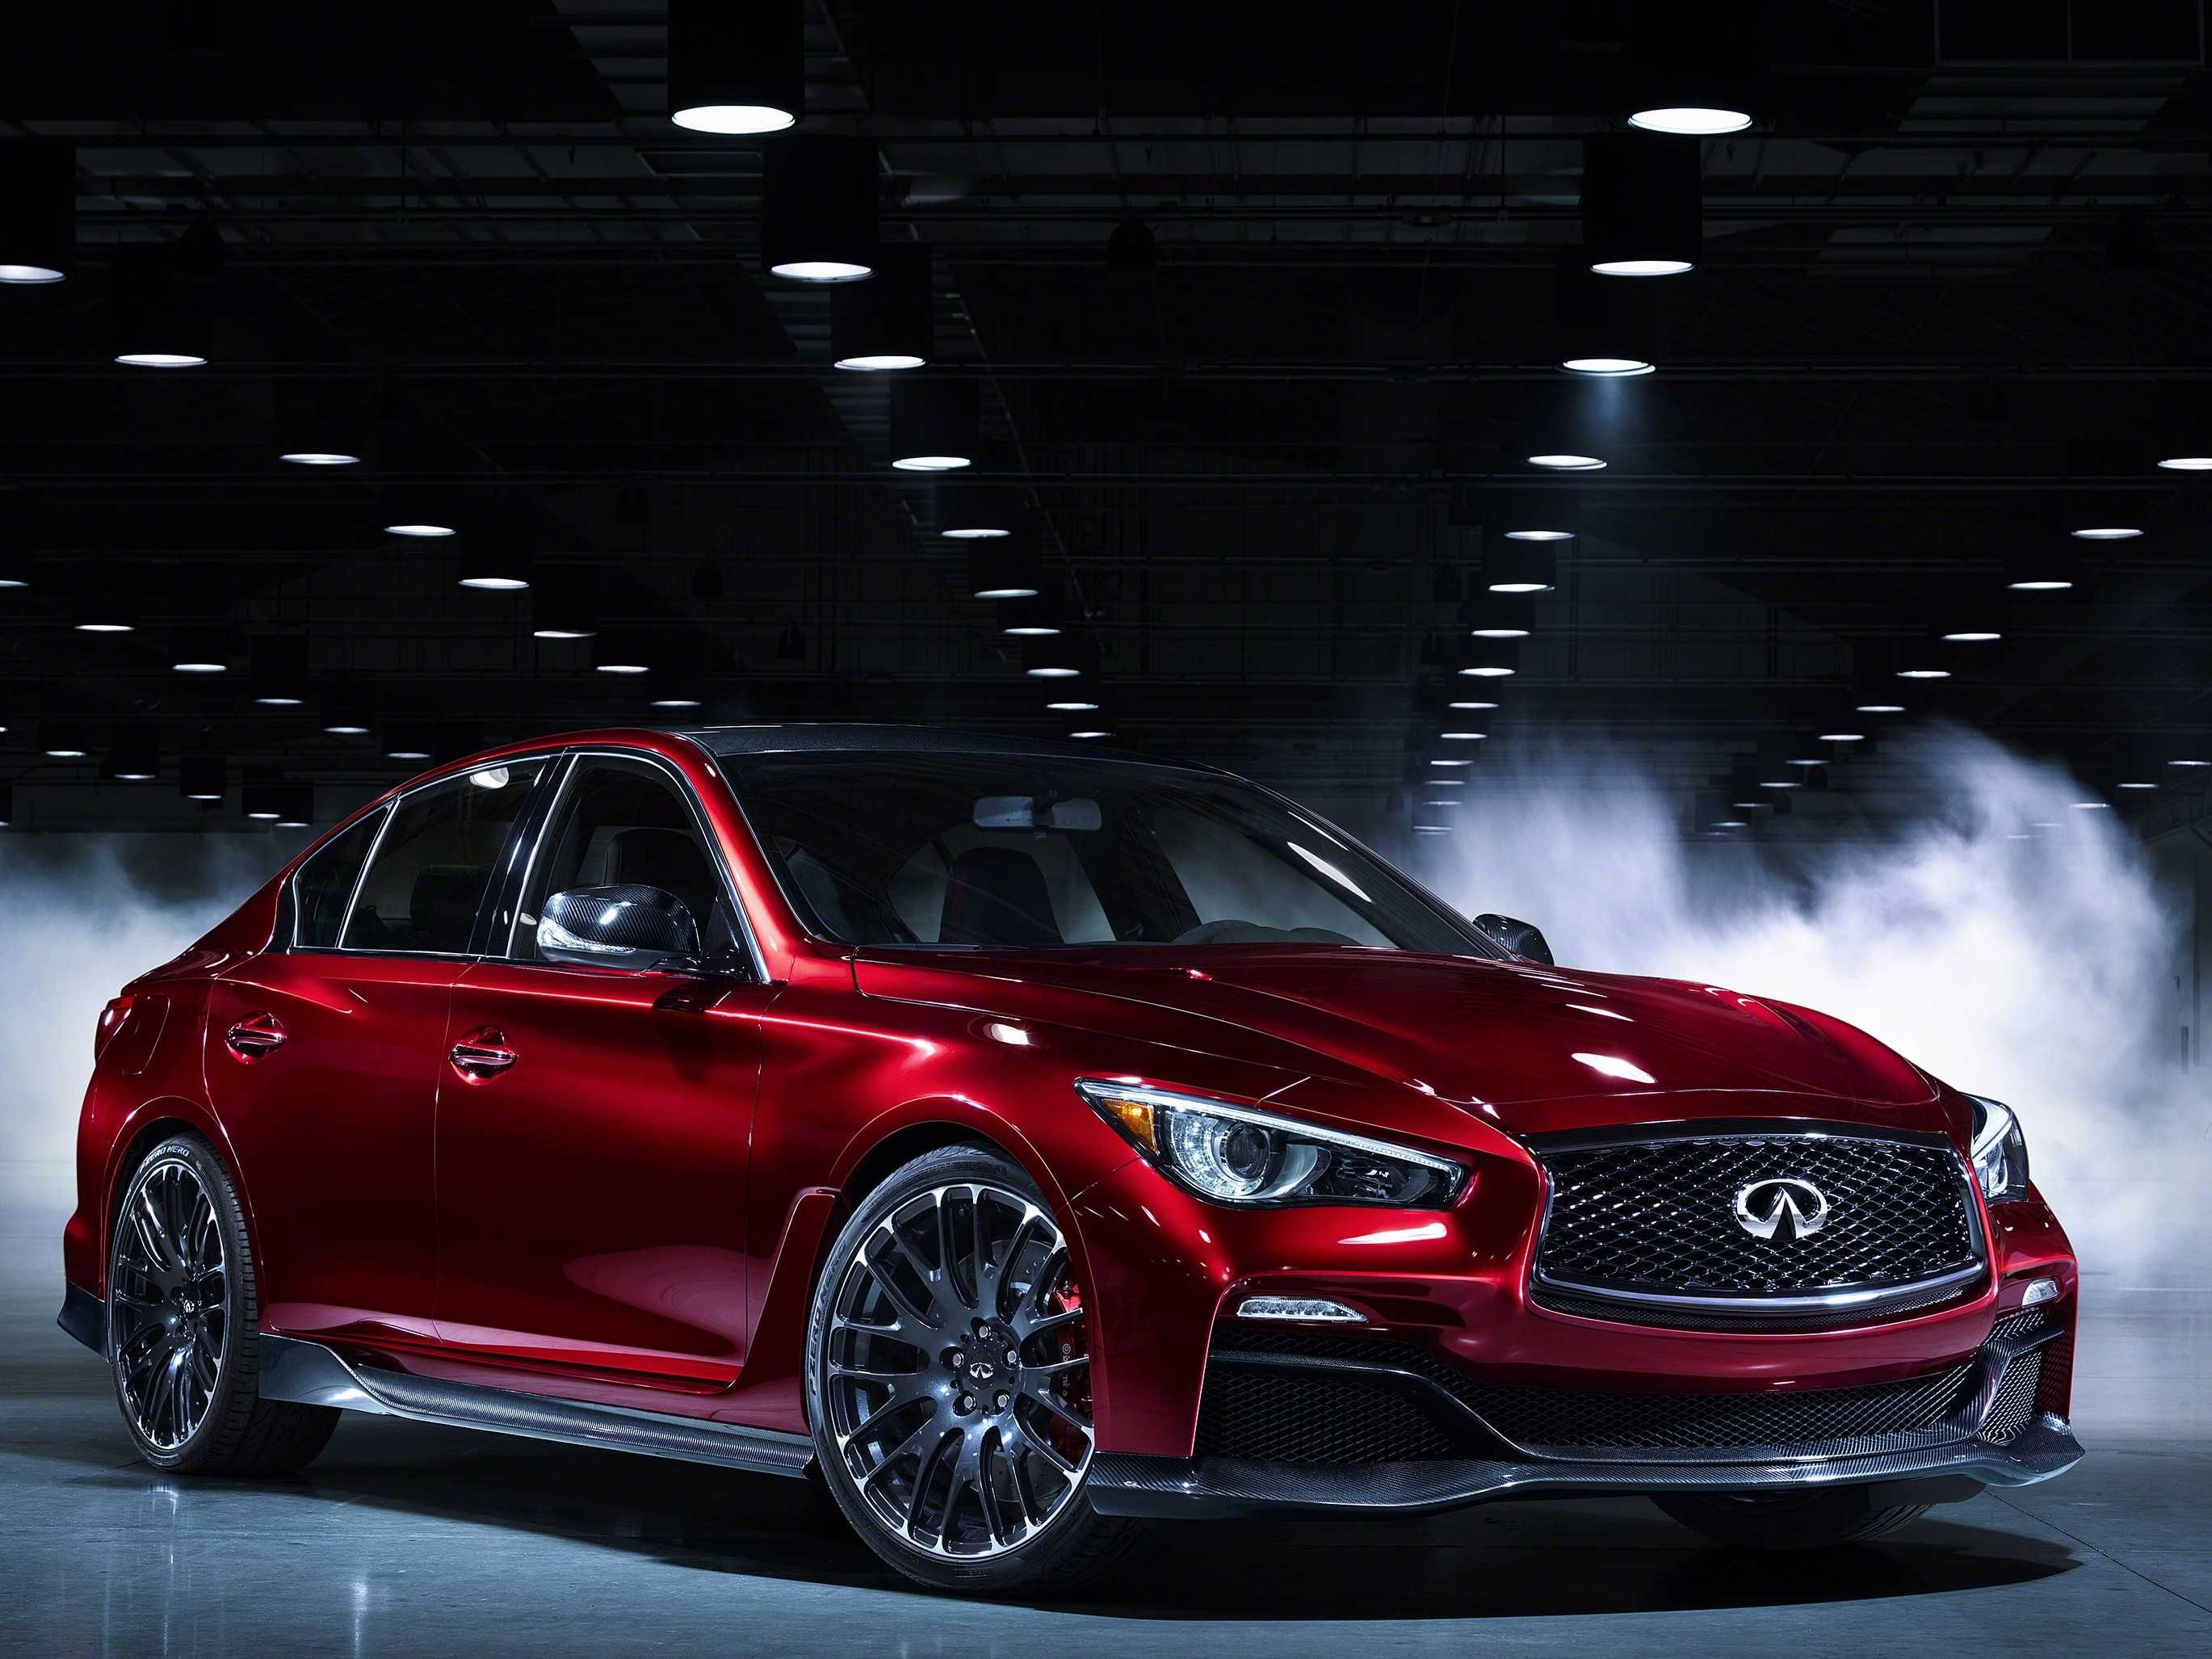 infiniti infinity file registered wiki october